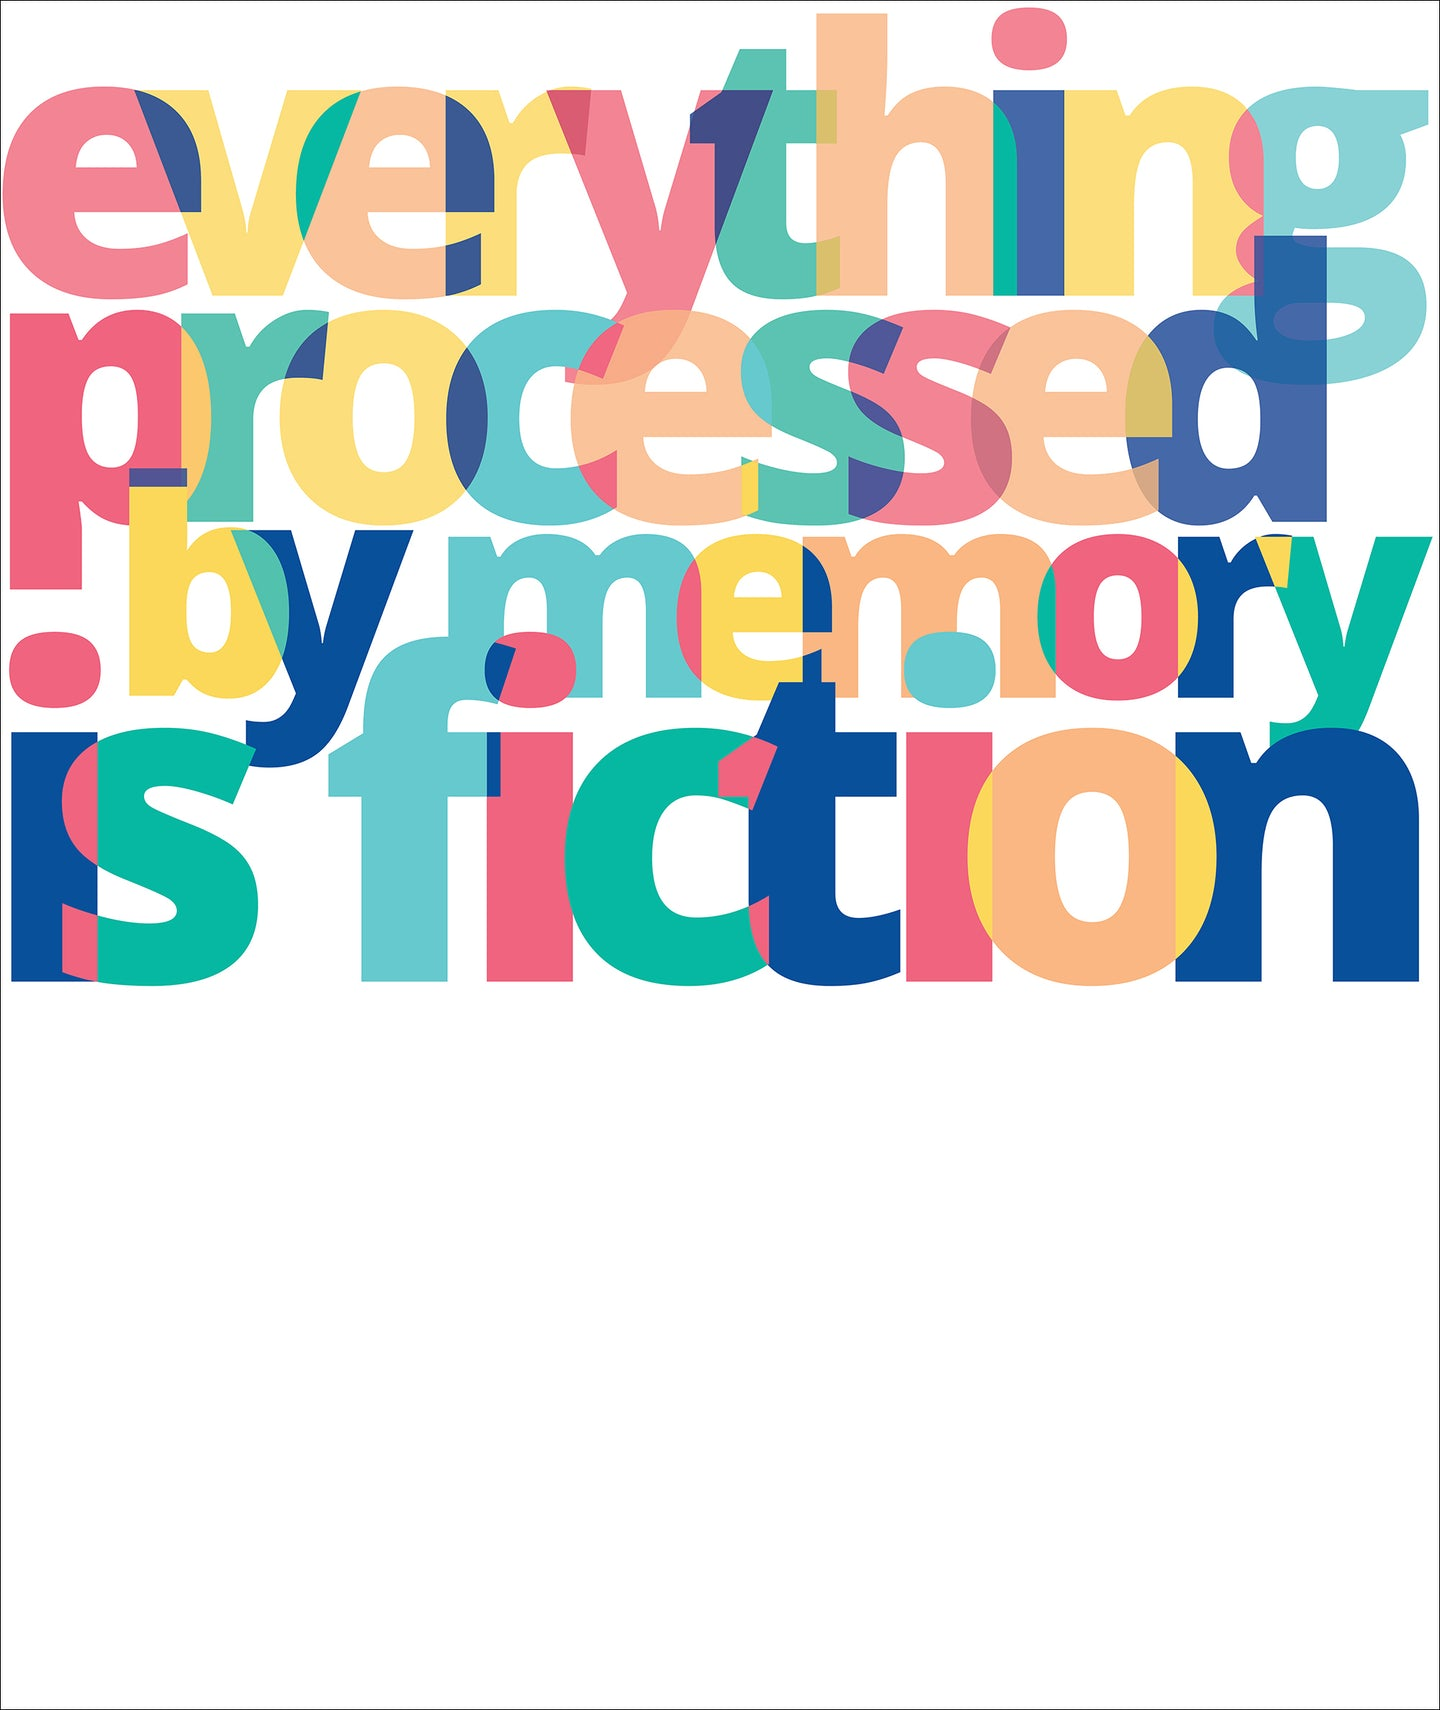 Everything processed by memory is fiction.